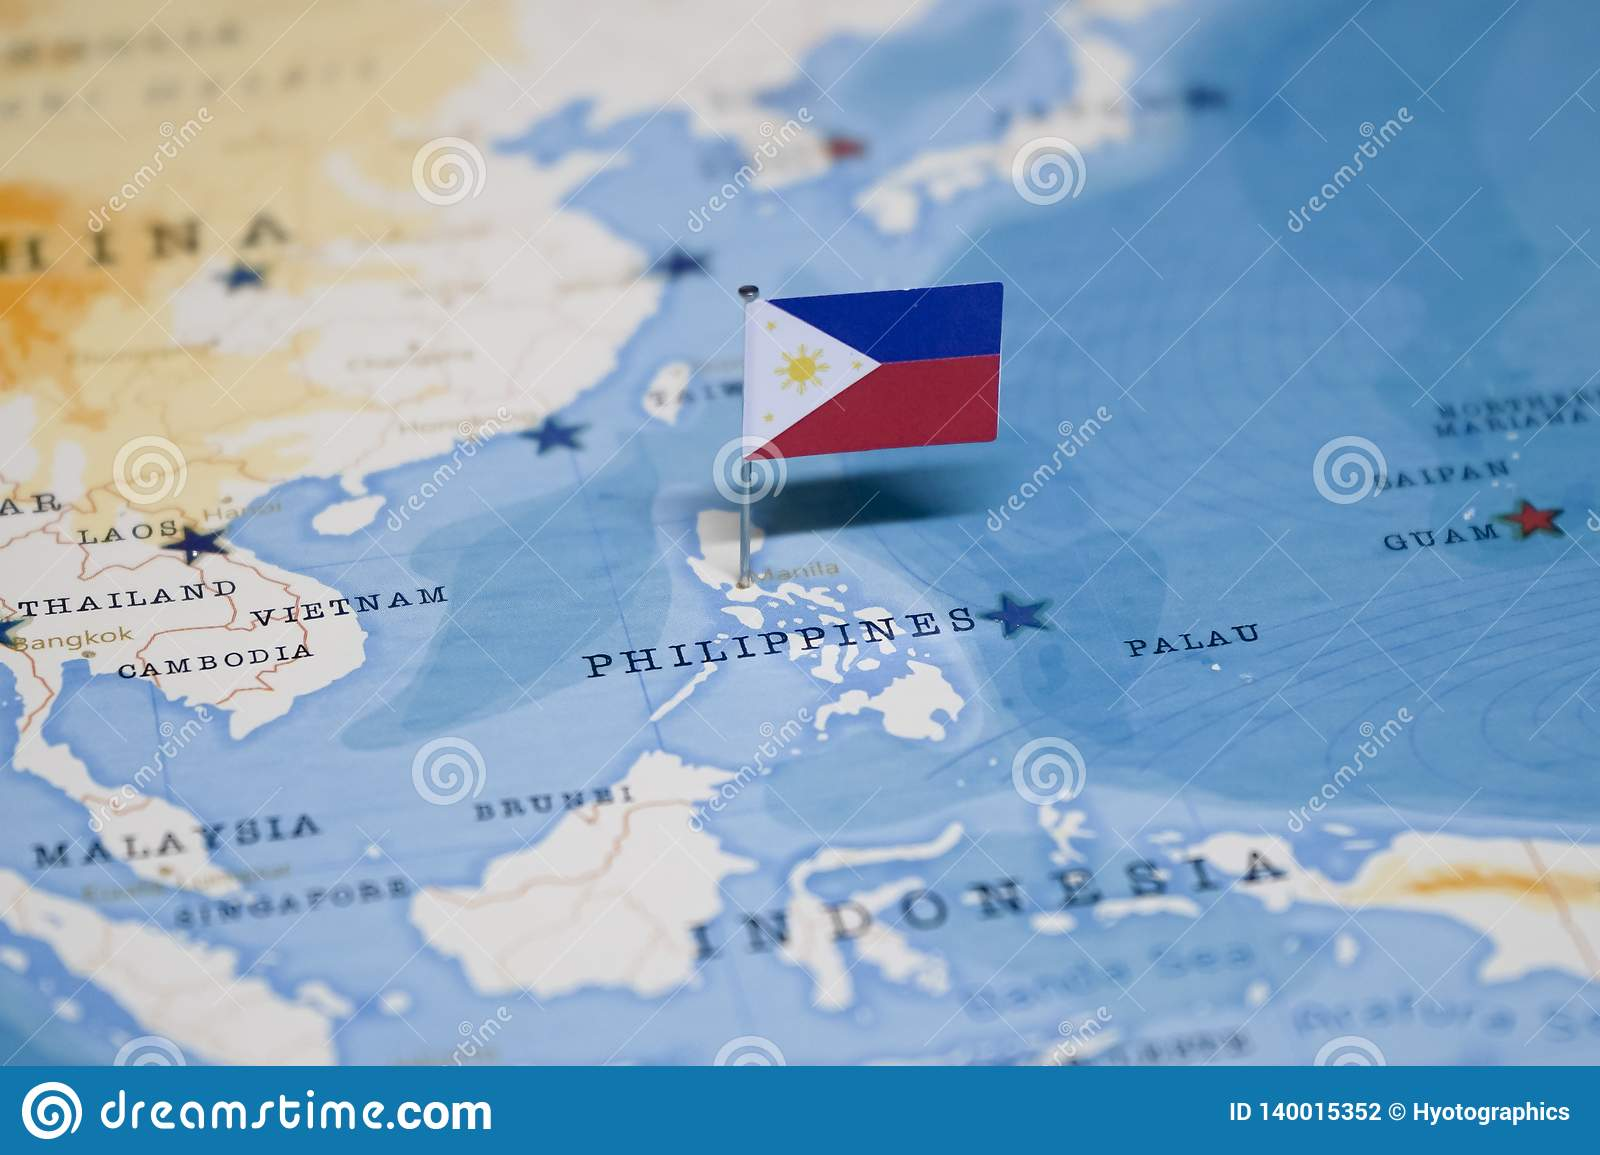 Picture of: 474 Map Philippines Photos Free Royalty Free Stock Photos From Dreamstime